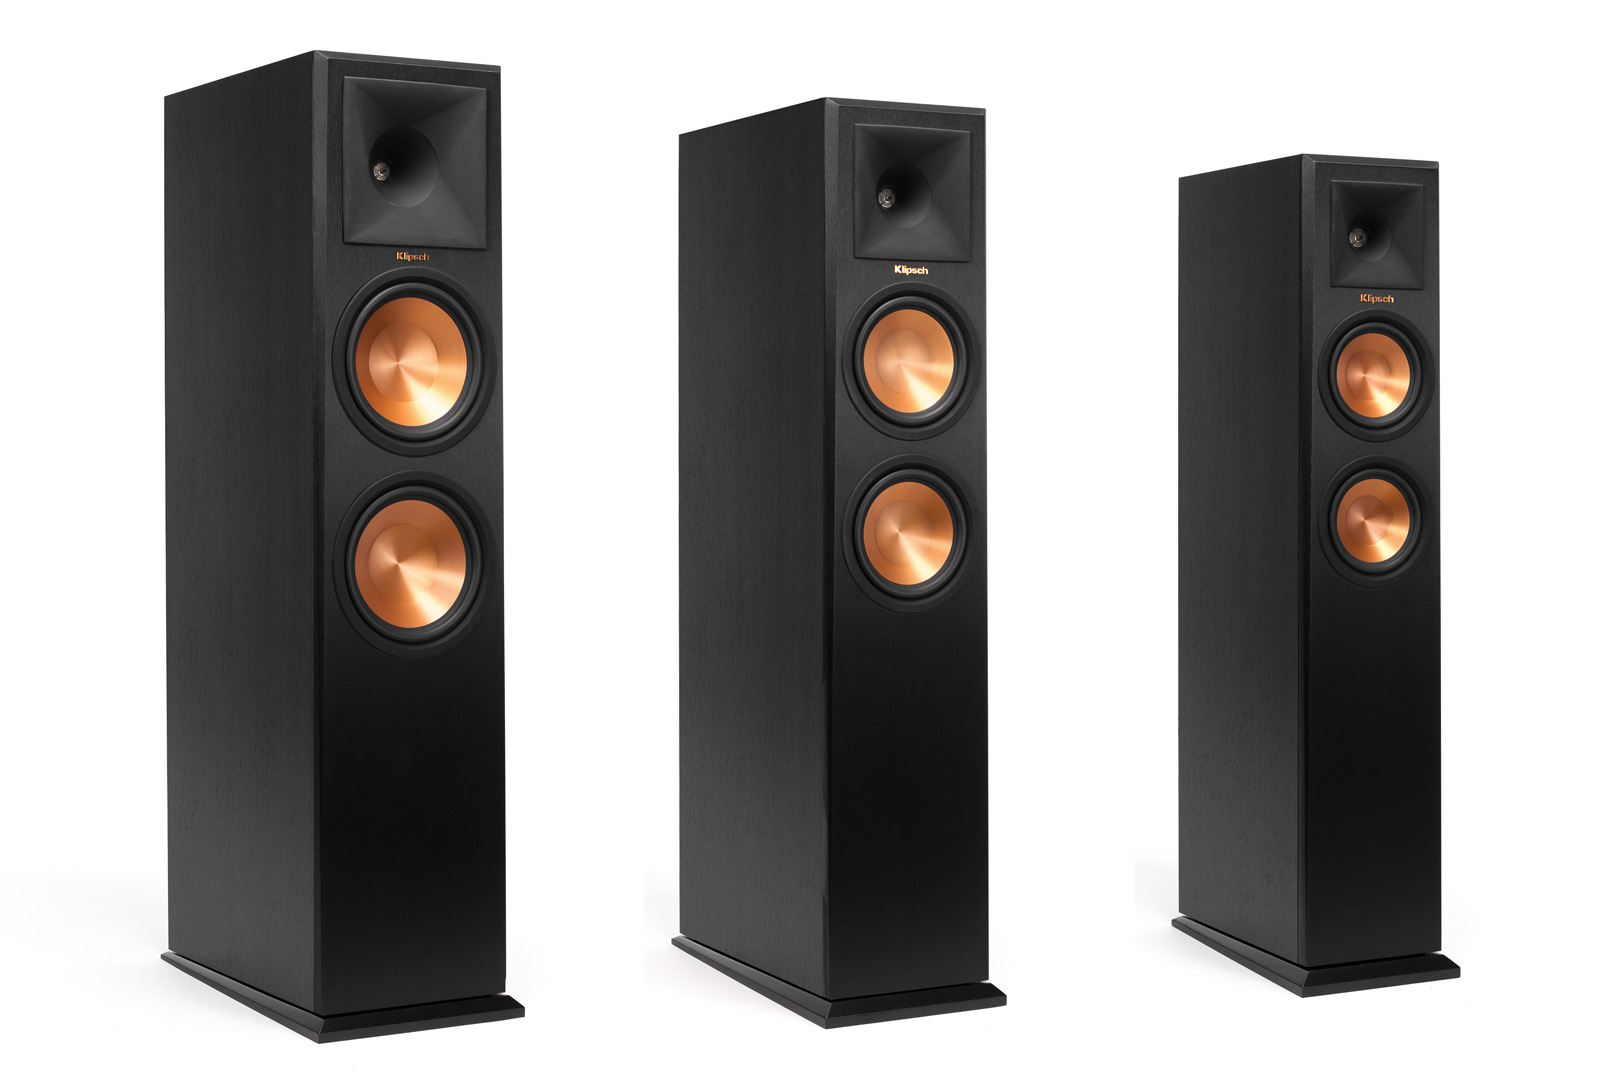 Reference Premiere Floorstanding Speakers comparison